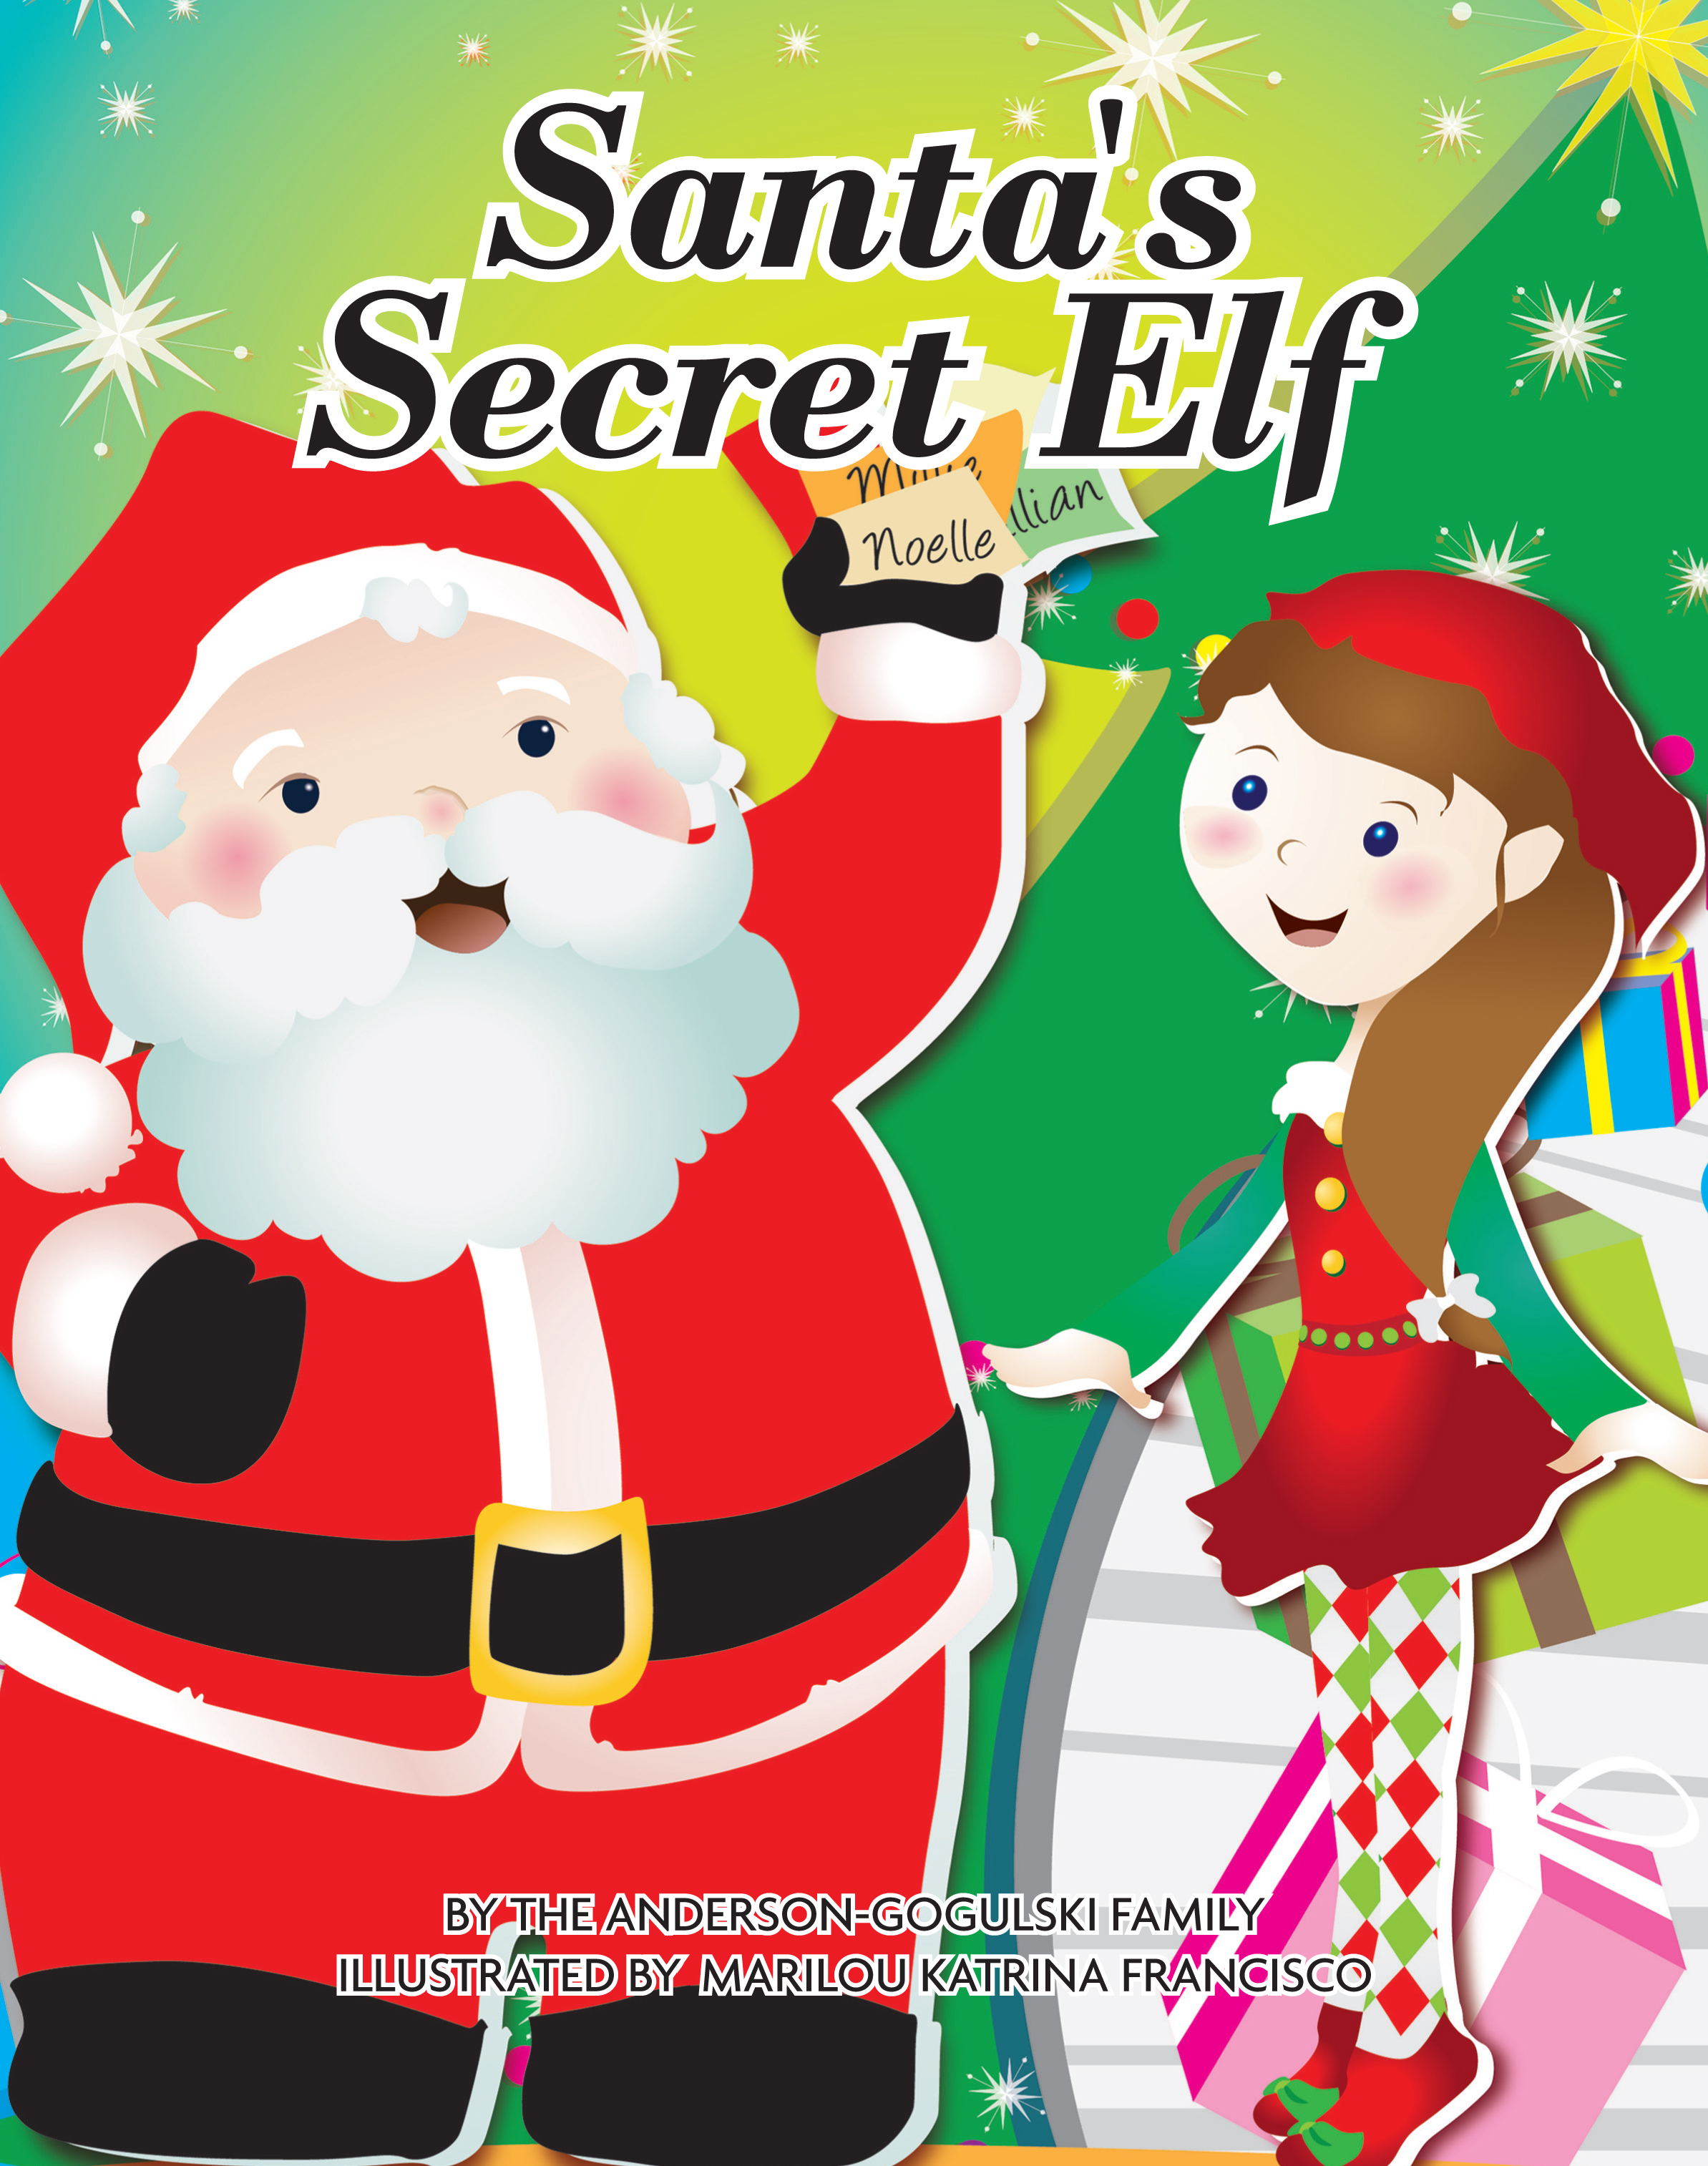 Santa's Secret Elf- Merryam